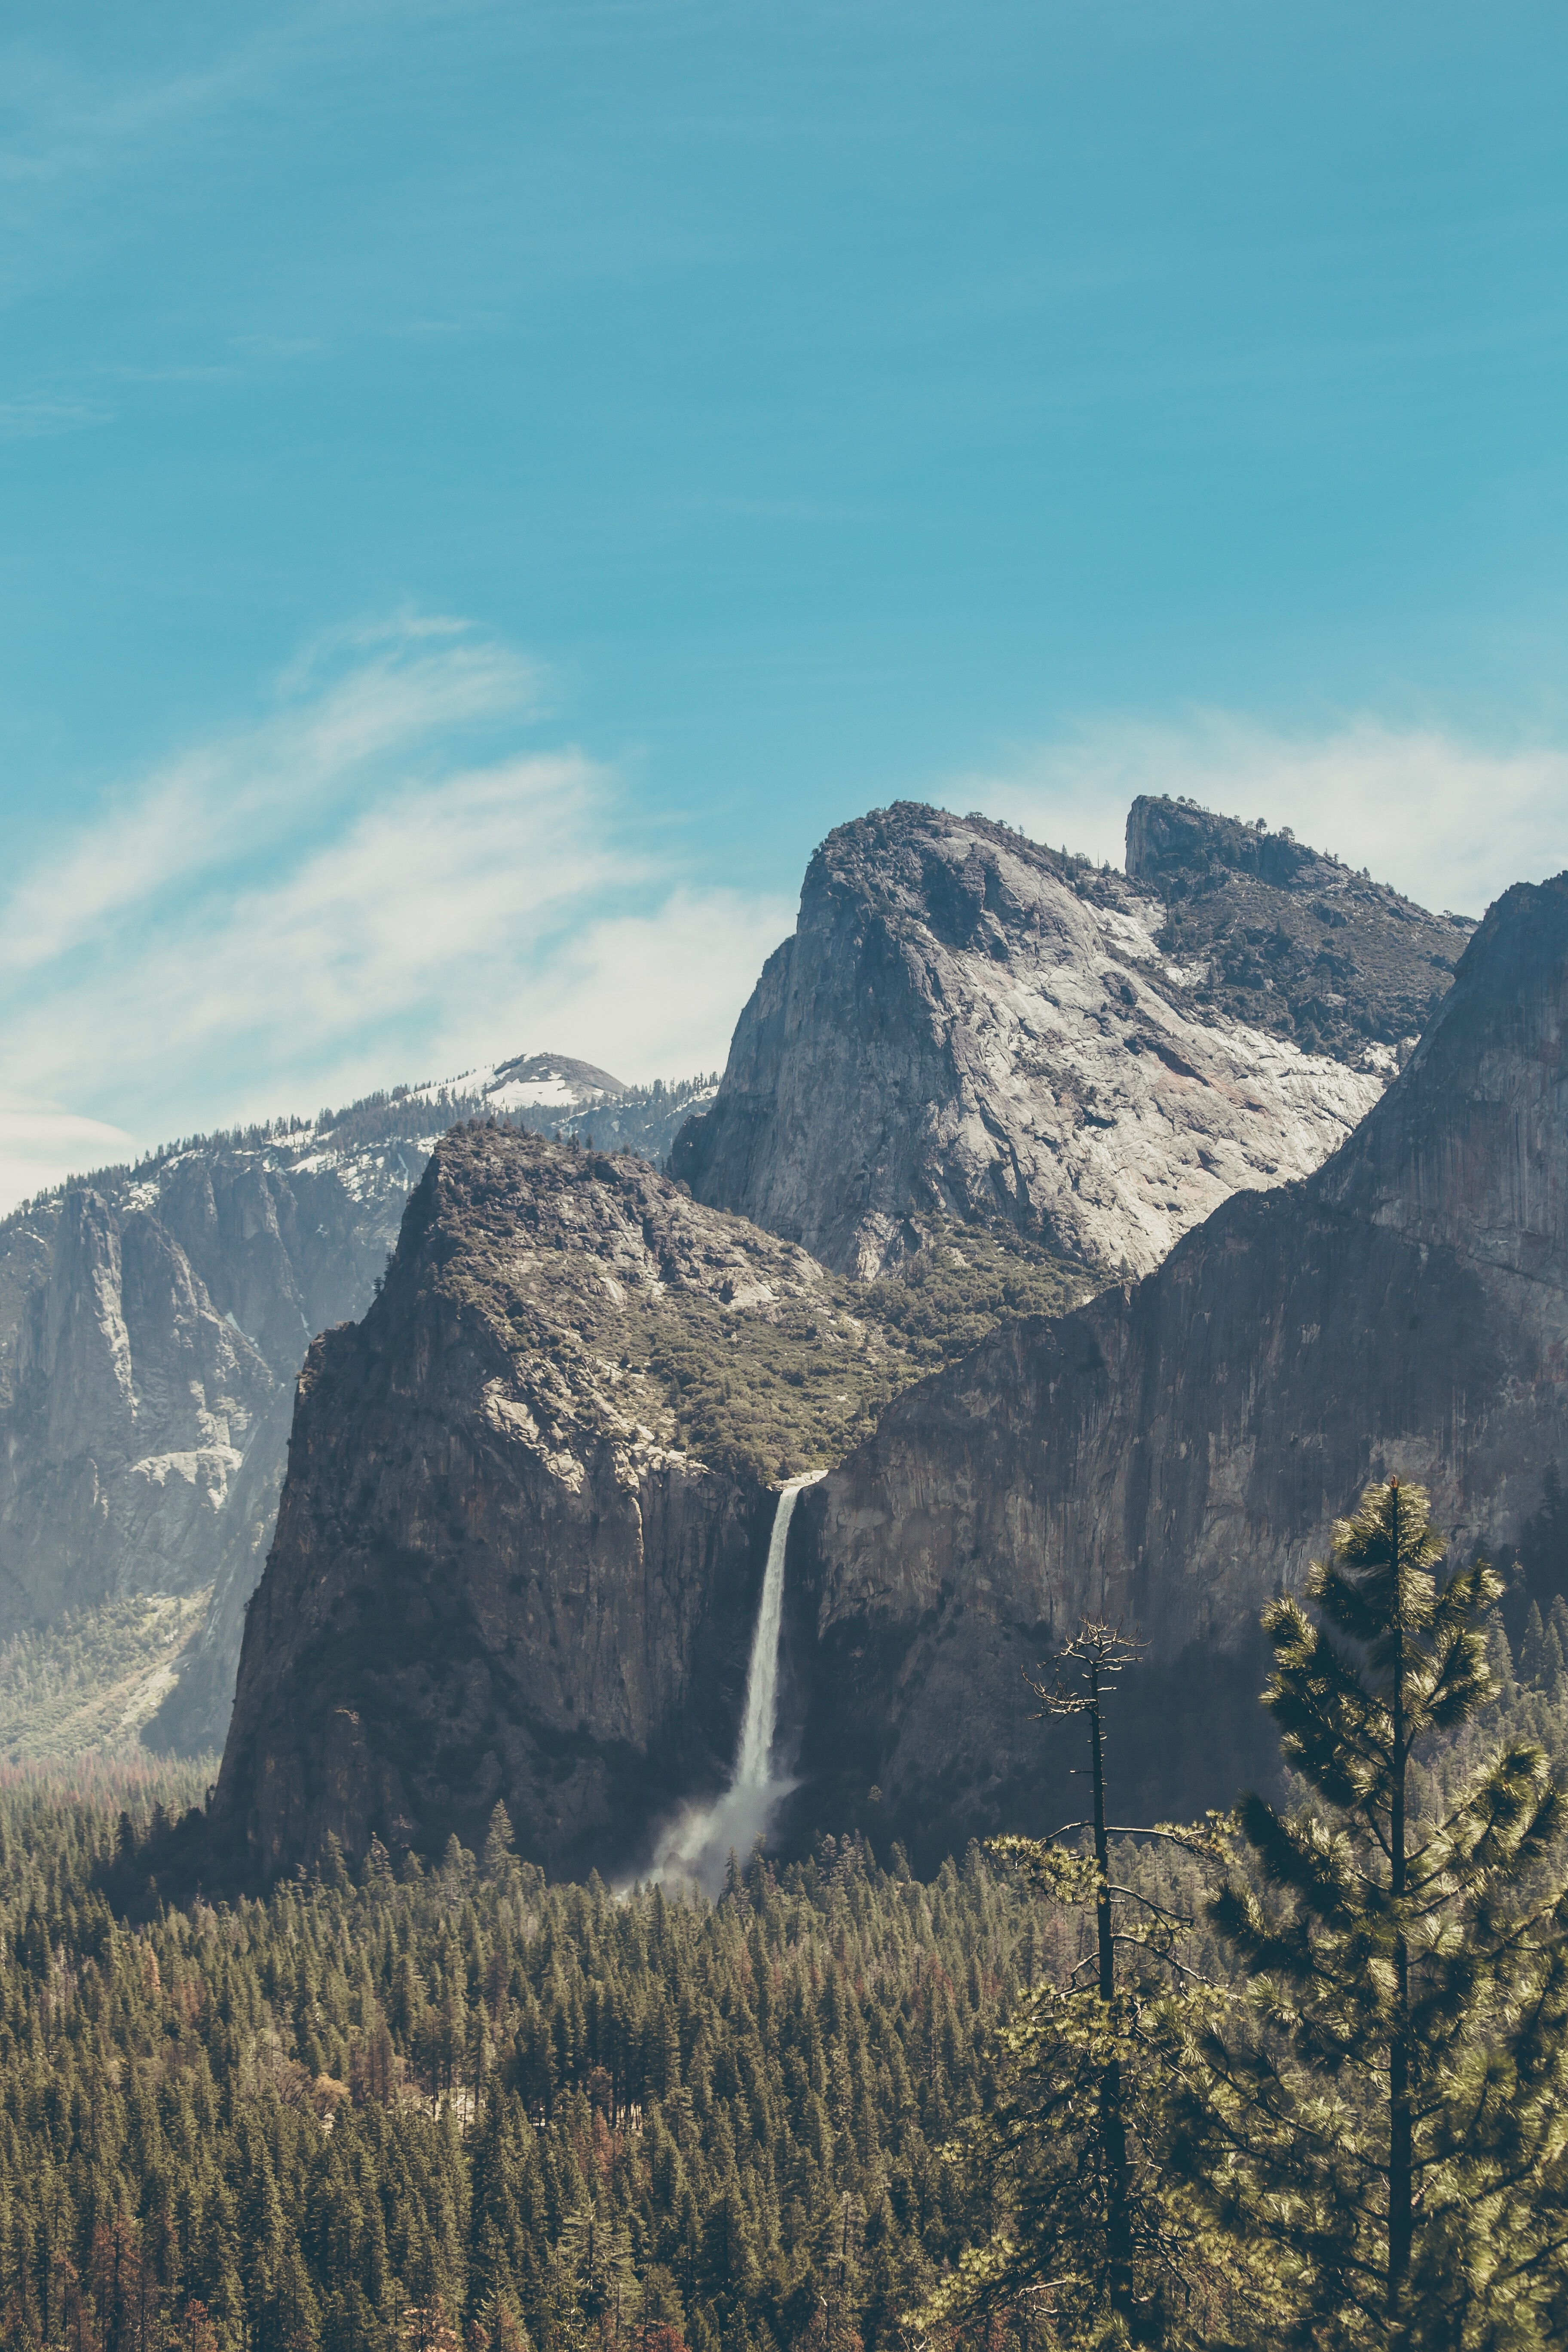 A magnificent landscape with a waterfall tumbling down a rocky face overlooking an evergreen forest